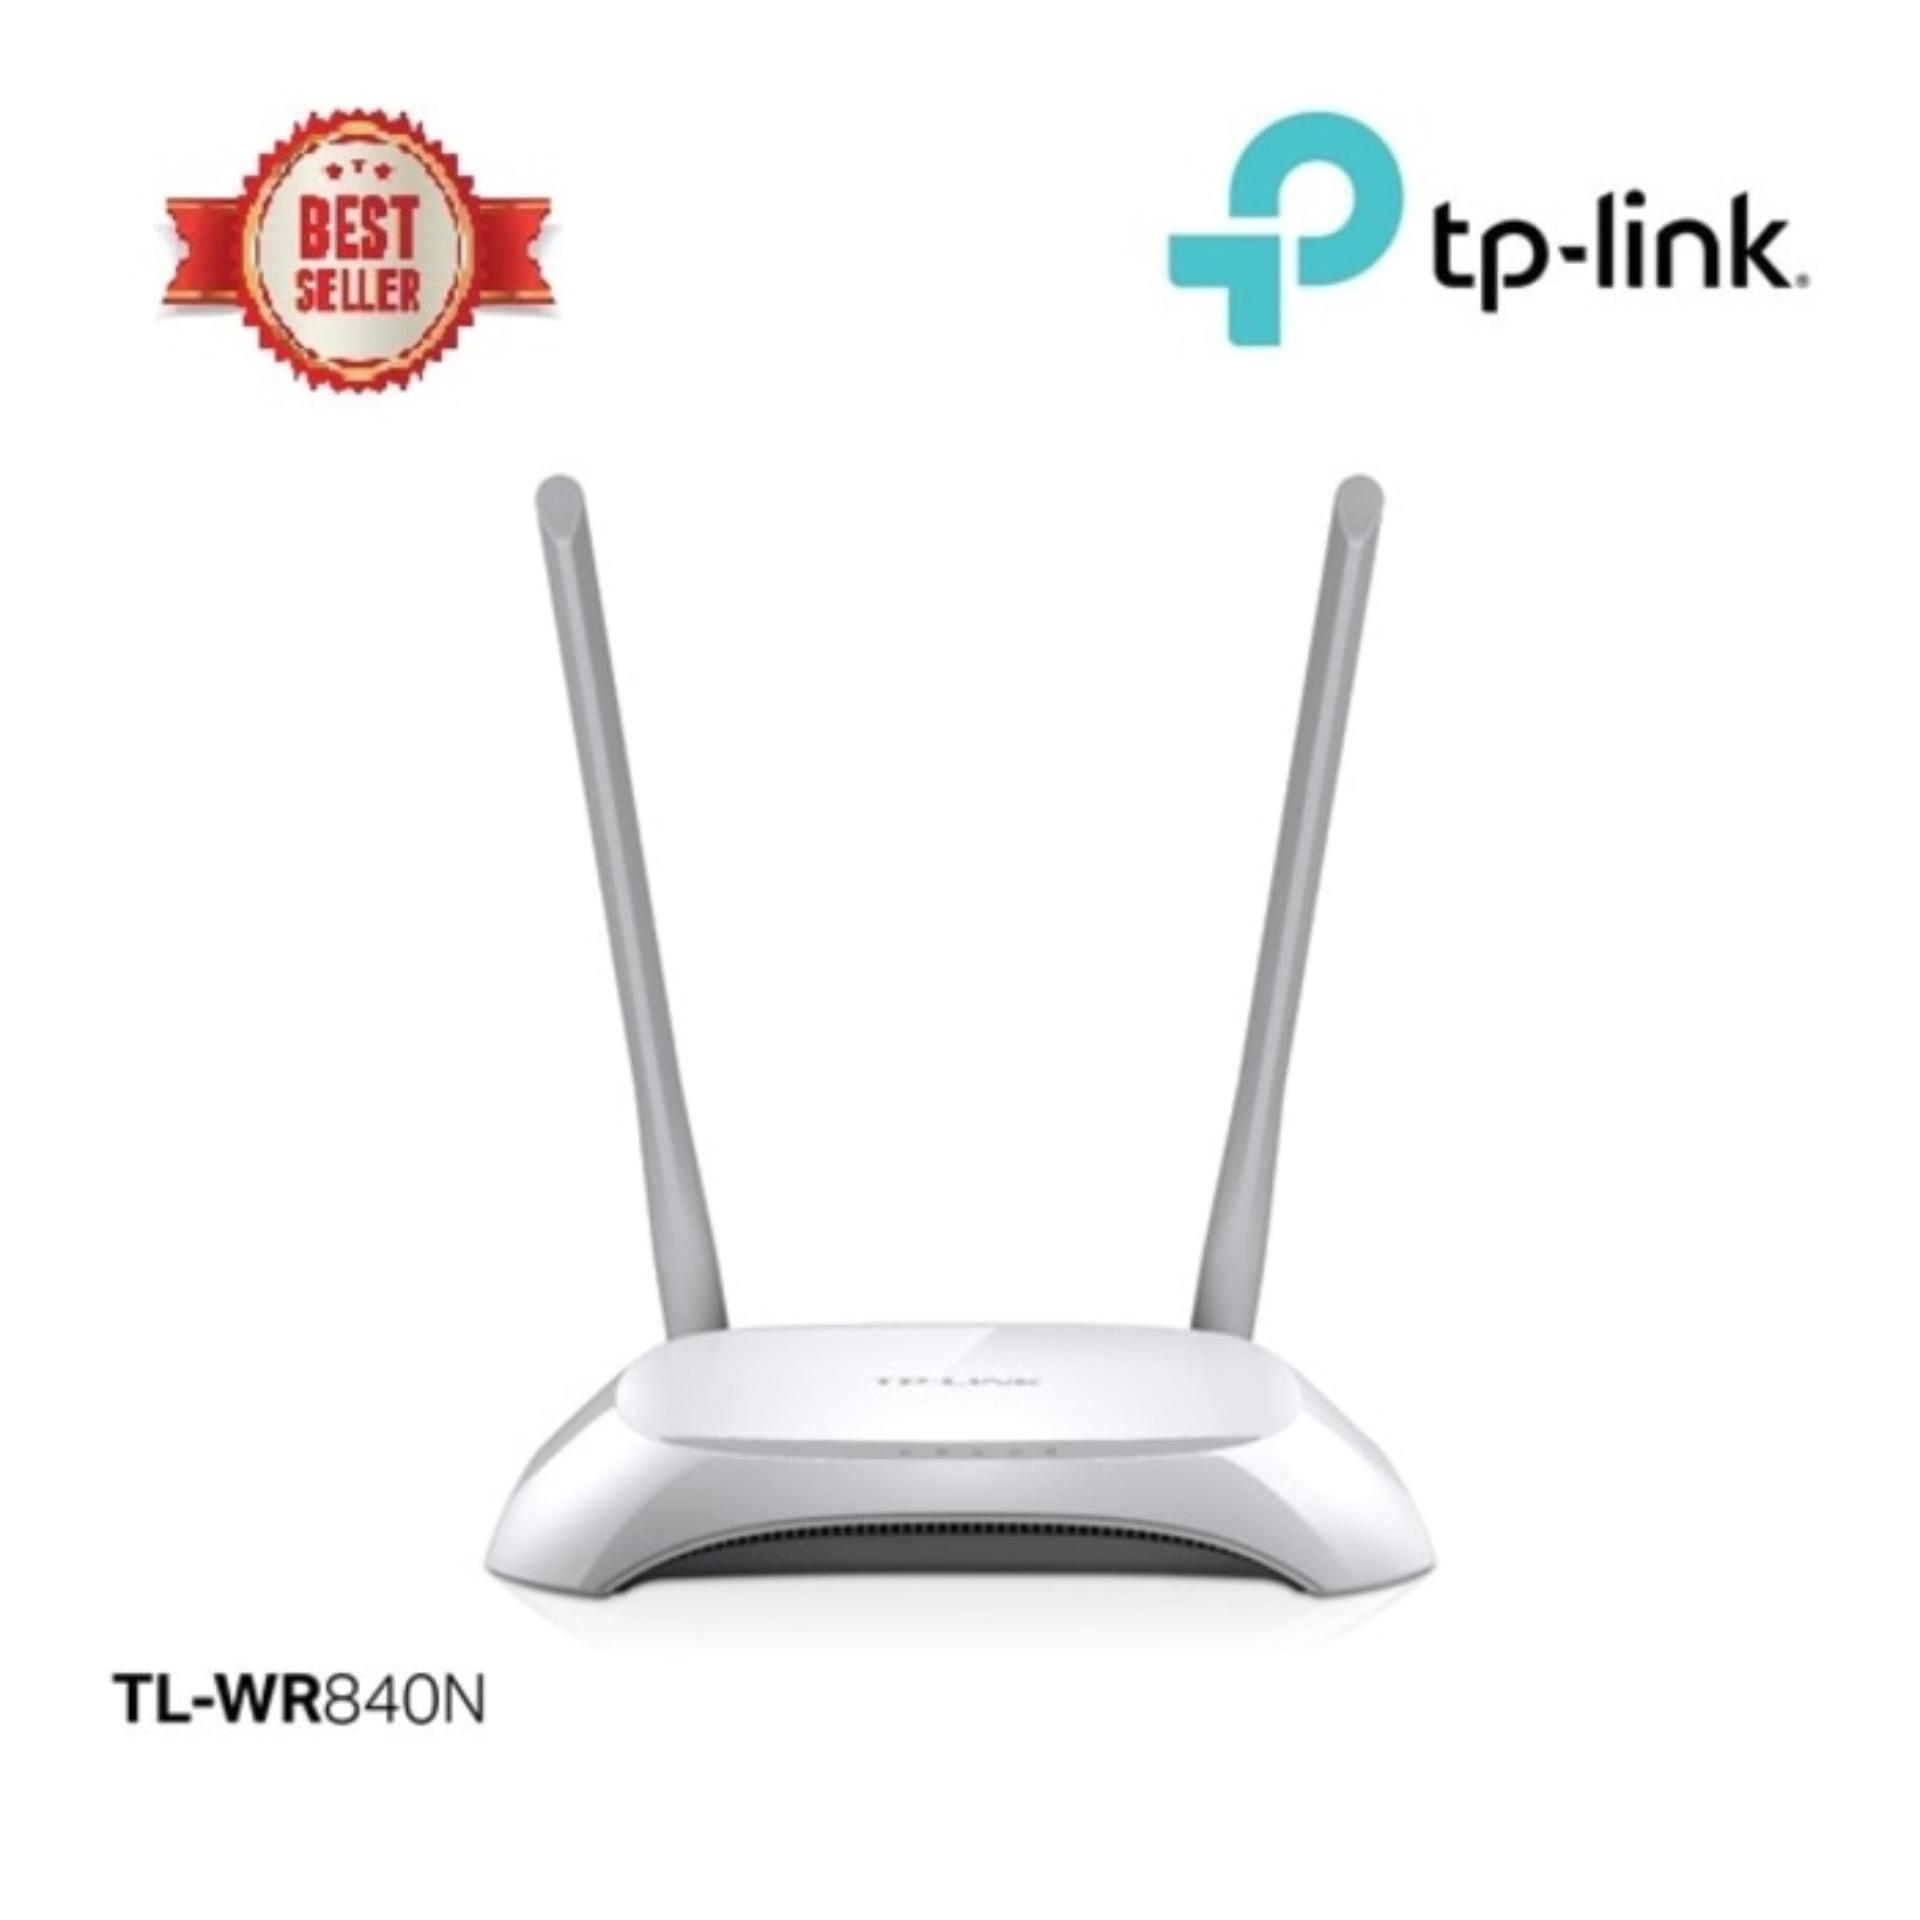 TP-LINK TL-WR840N 300Mbps Wireless N